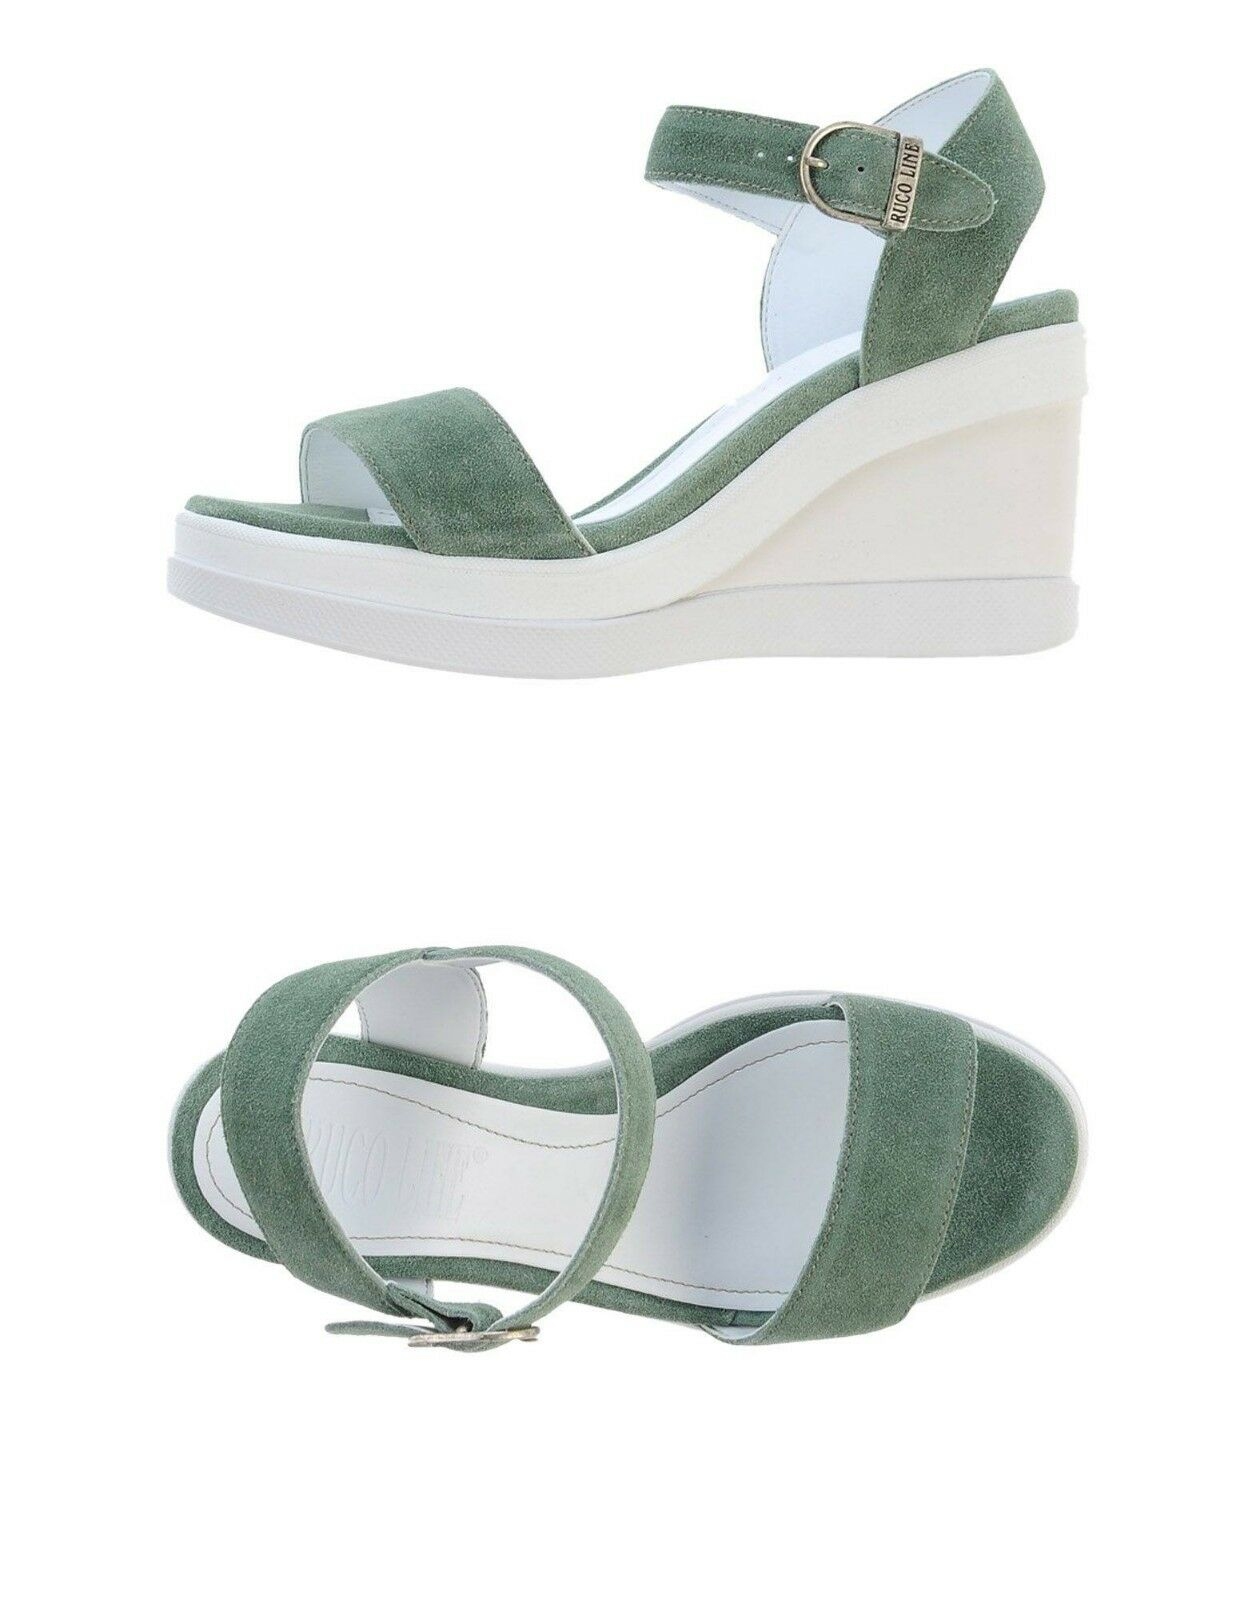 RUCO LINE Marge Summer Suede Wedges Eur 39 US 9 New in box